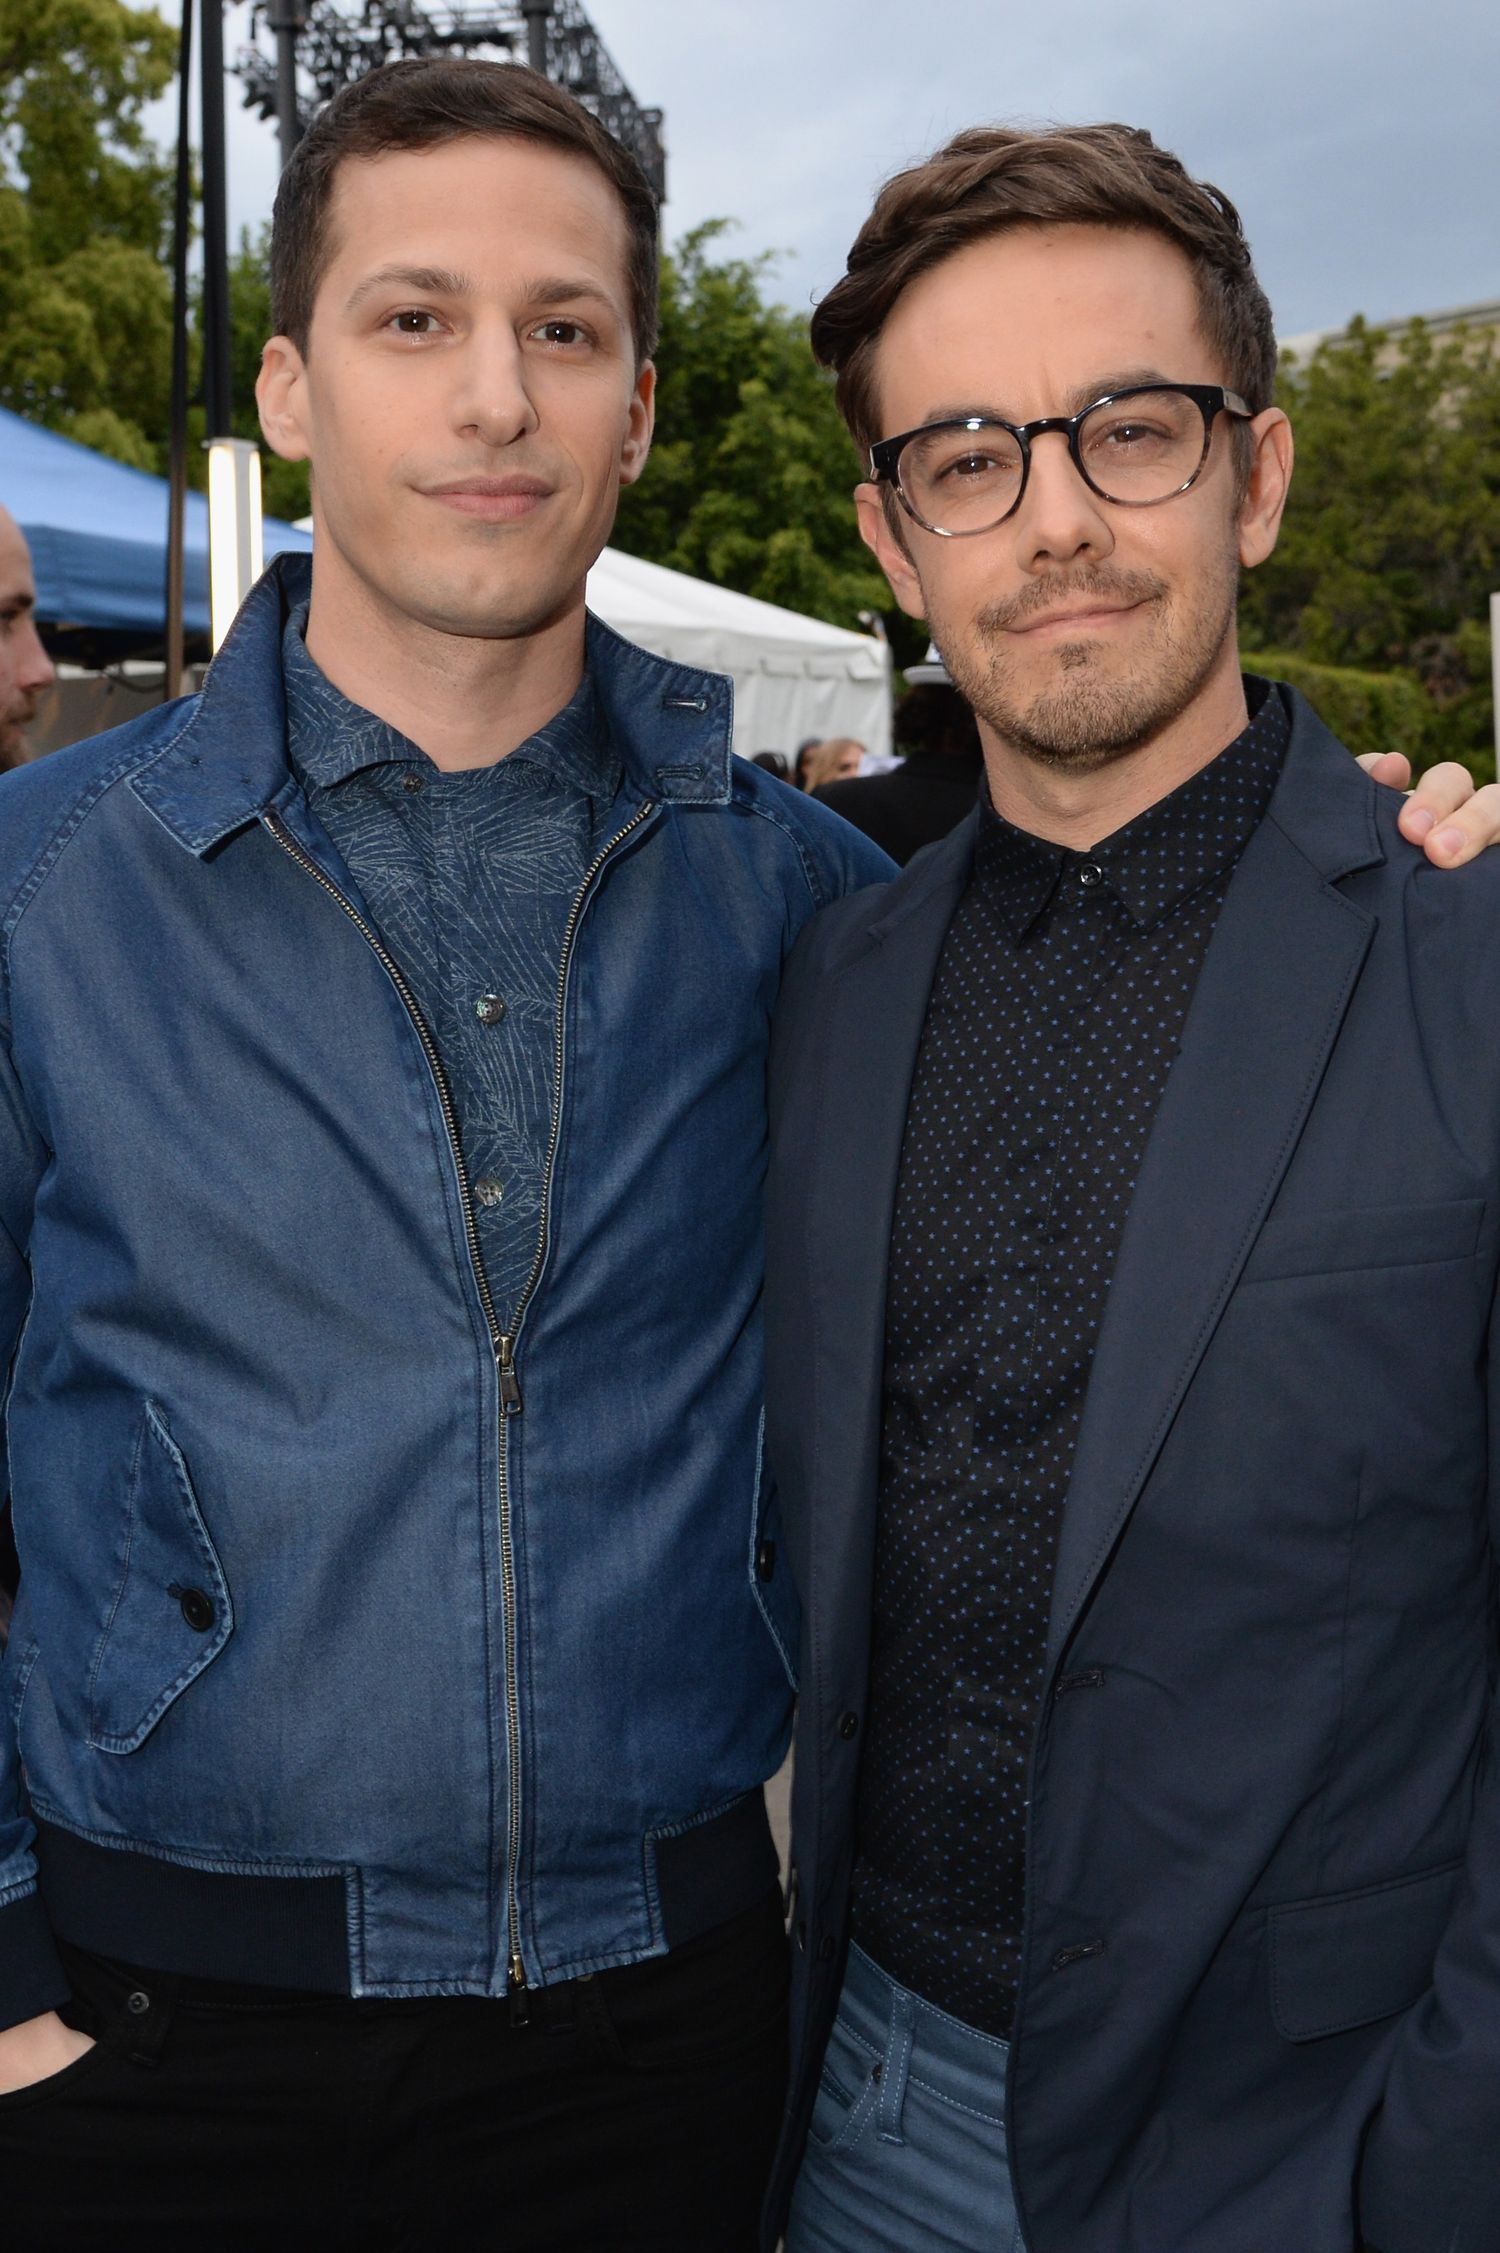 BURBANK, CALIFORNIA - APRIL 09: Actors Andy Samberg (L) and Jorma Taccone attend the 2016 MTV Movie Awards at Warner Bros. Studios on April 9, 2016 in Burbank, California. MTV Movie Awards airs April 10, 2016 at 8pm ET/PT. (Photo by Jeff Kravitz/FilmMagic for MTV)